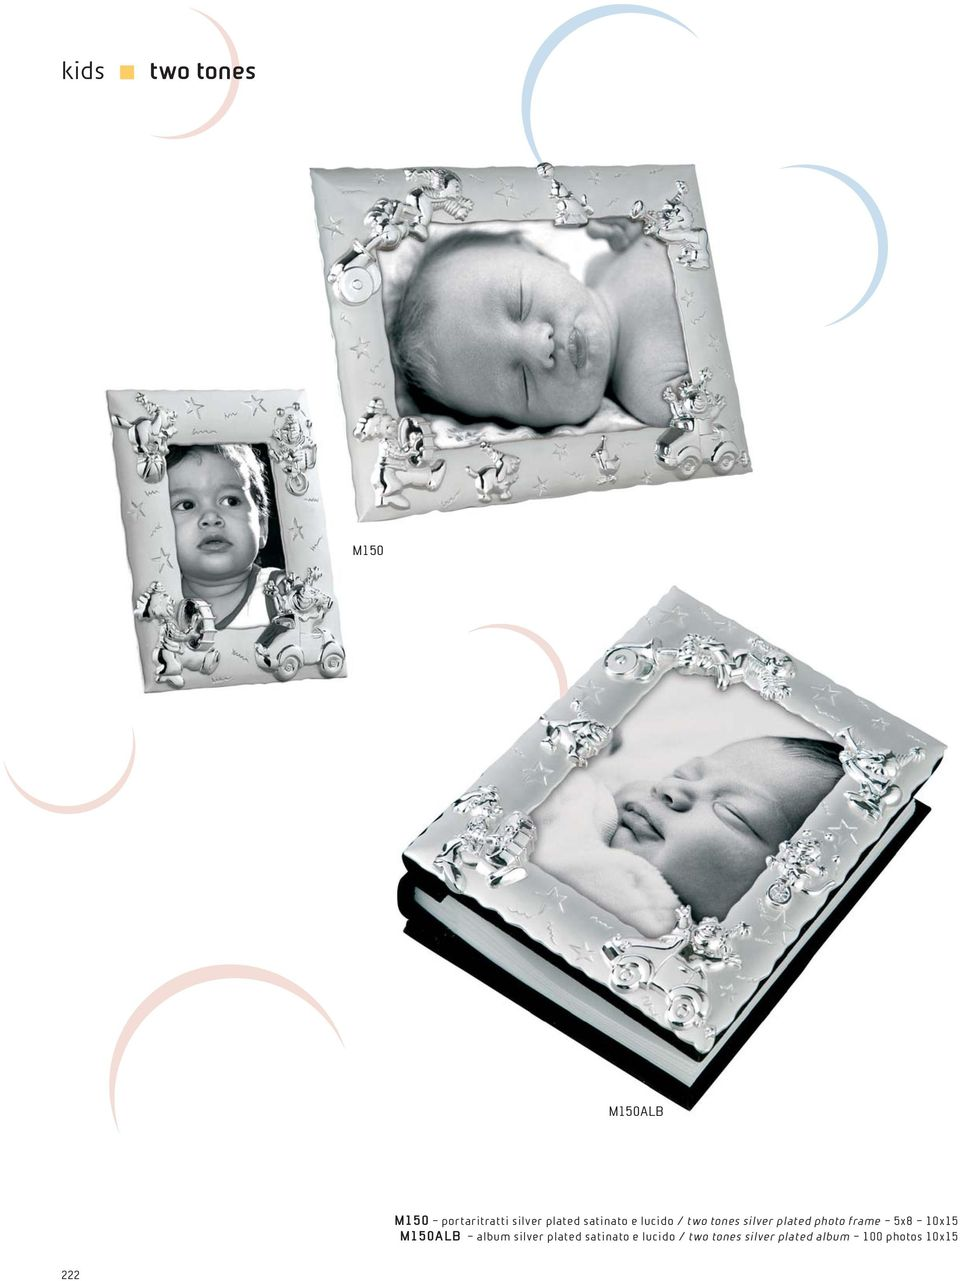 photo frame 5x8 10x15 M150ALB album silver  album 100